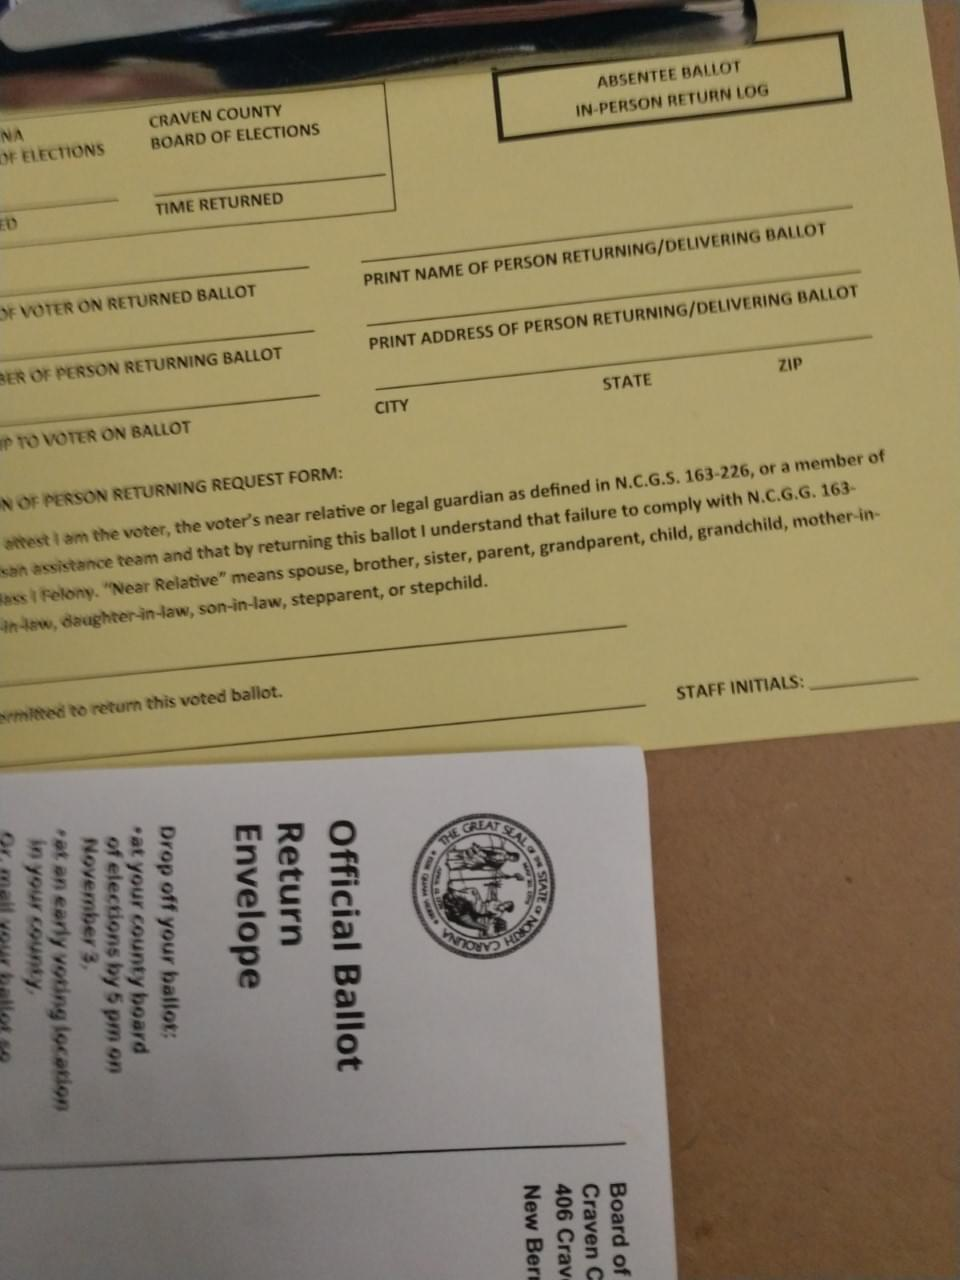 Dropping Off Your Absentee Ballot at the Craven County Board of Elections